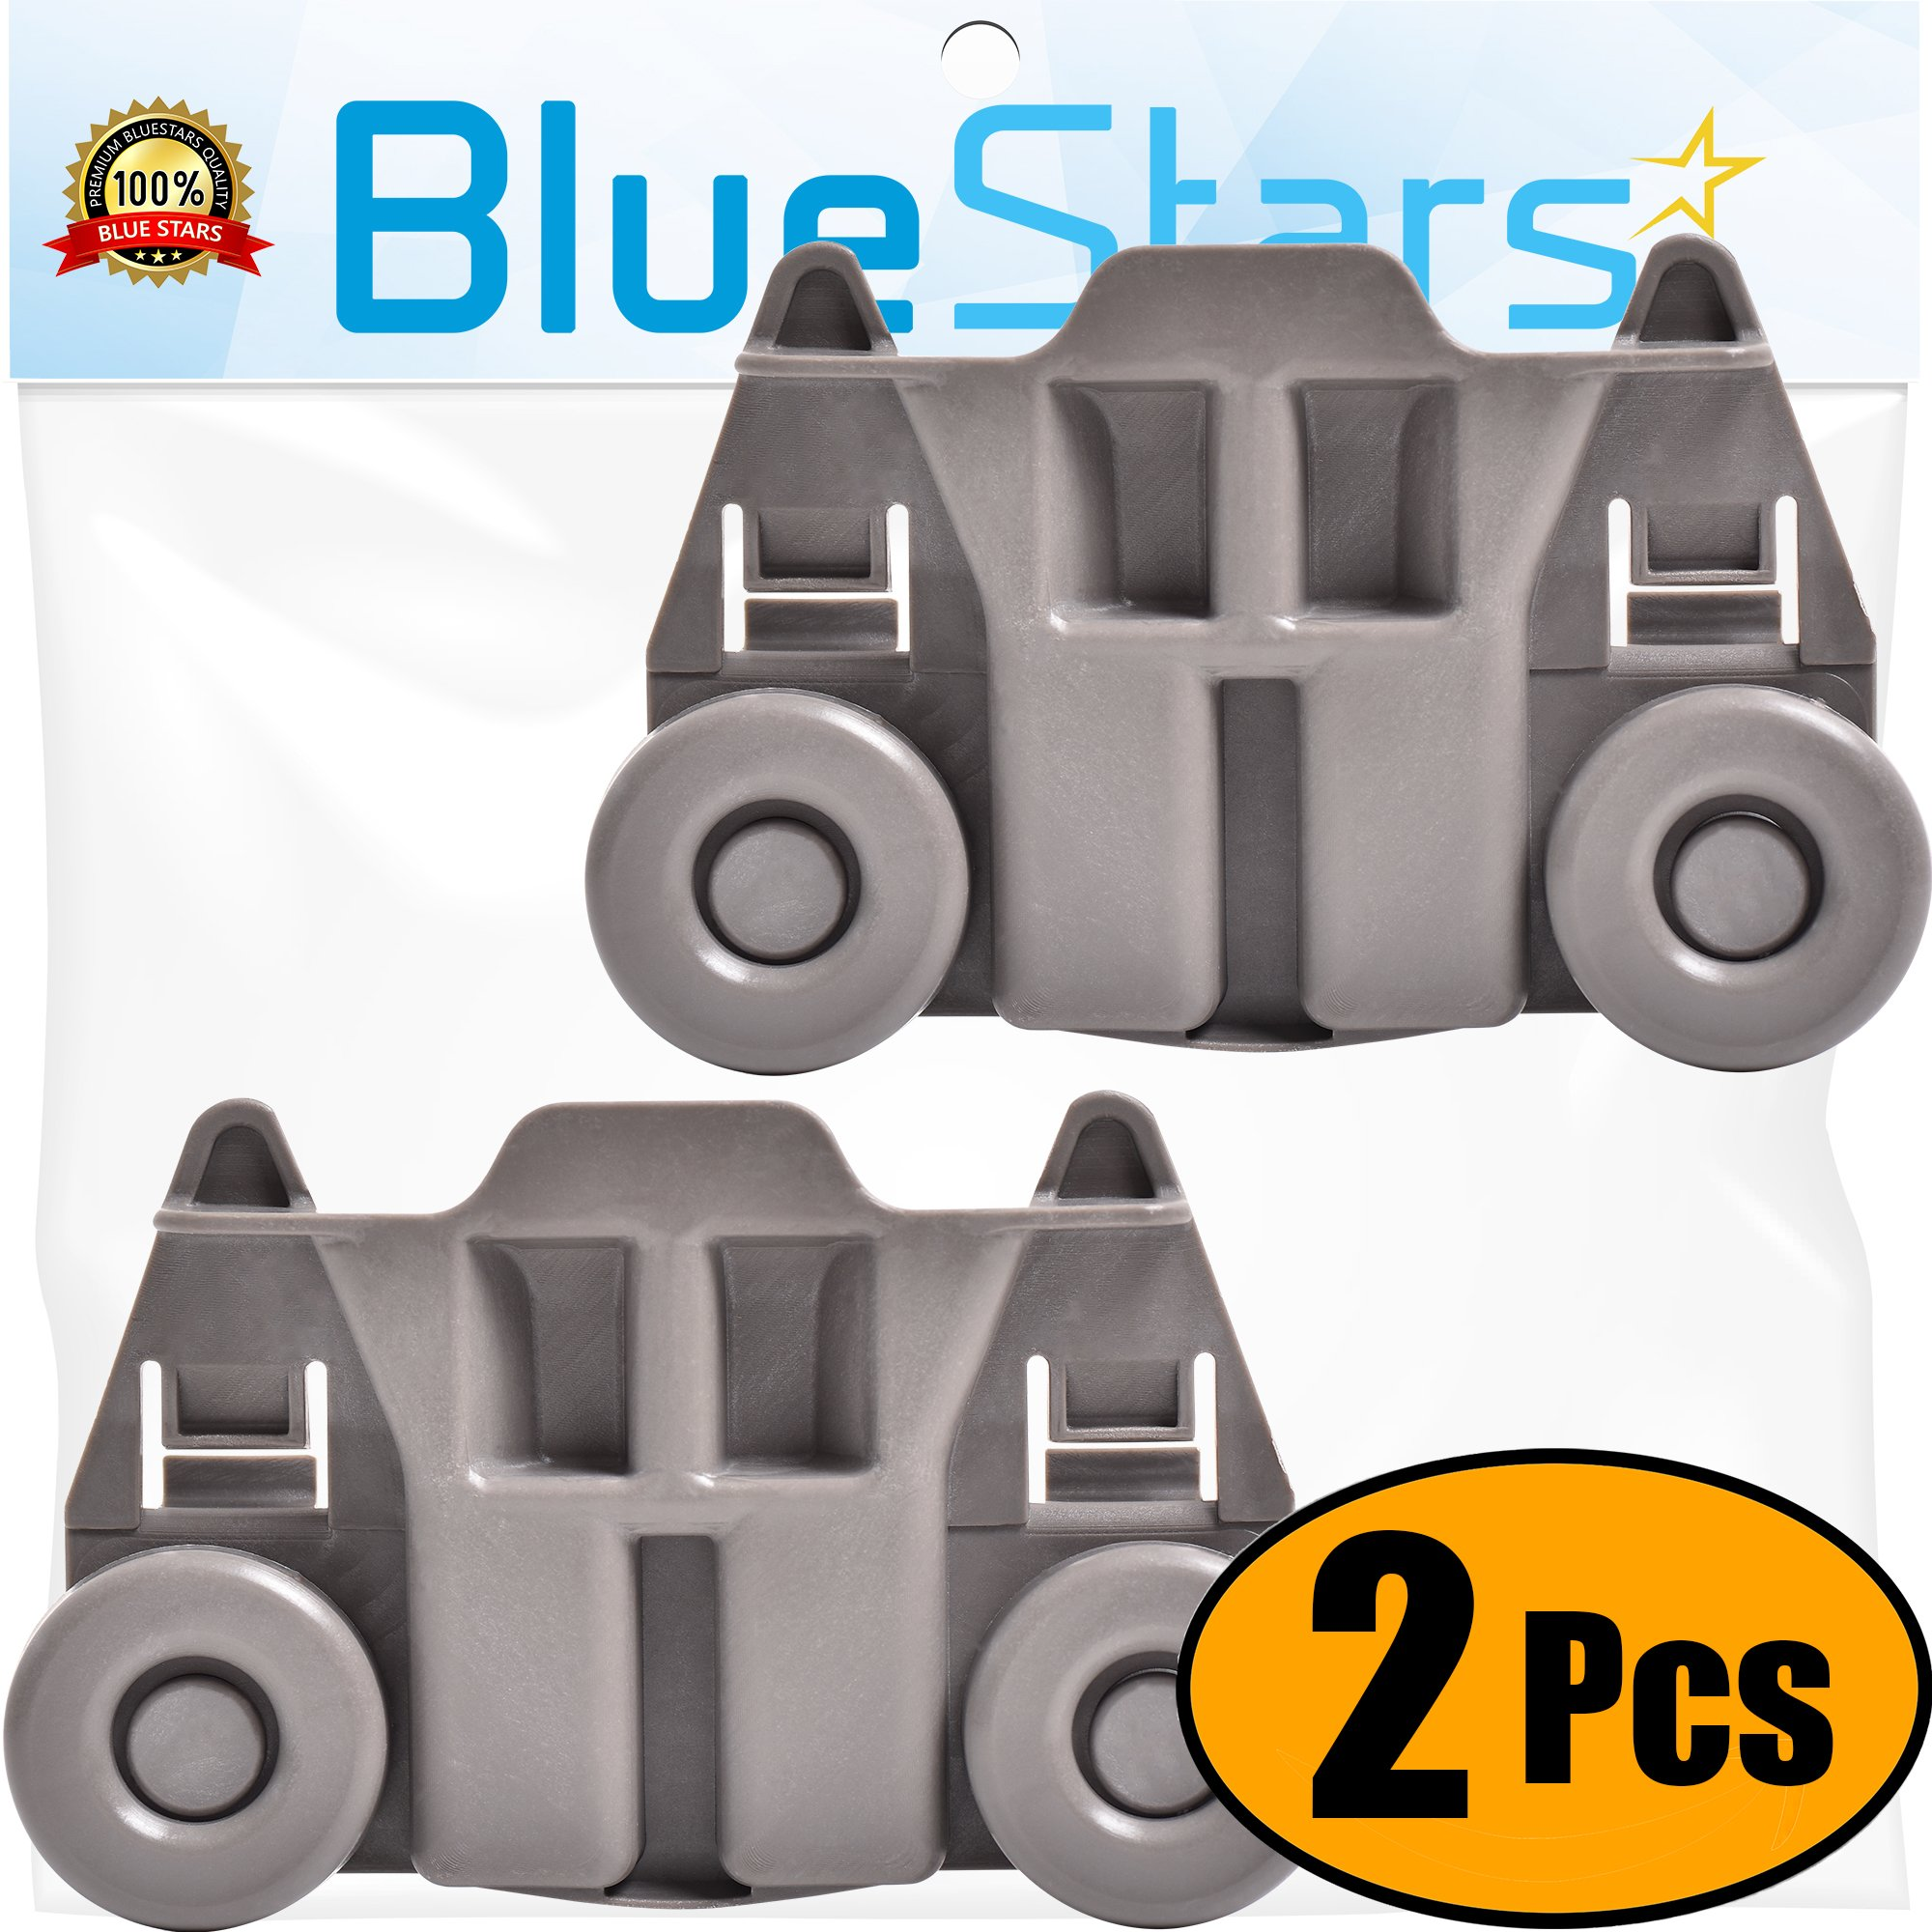 Ultra Durable W10195417 Dishwasher Roller Wheel Track Replacement Part by Blue Stars – Exact Fit For Whirlpool & Kenmore Dishwashers – Replaces WPW10195417 WPW10195417VP - PACK OF 2